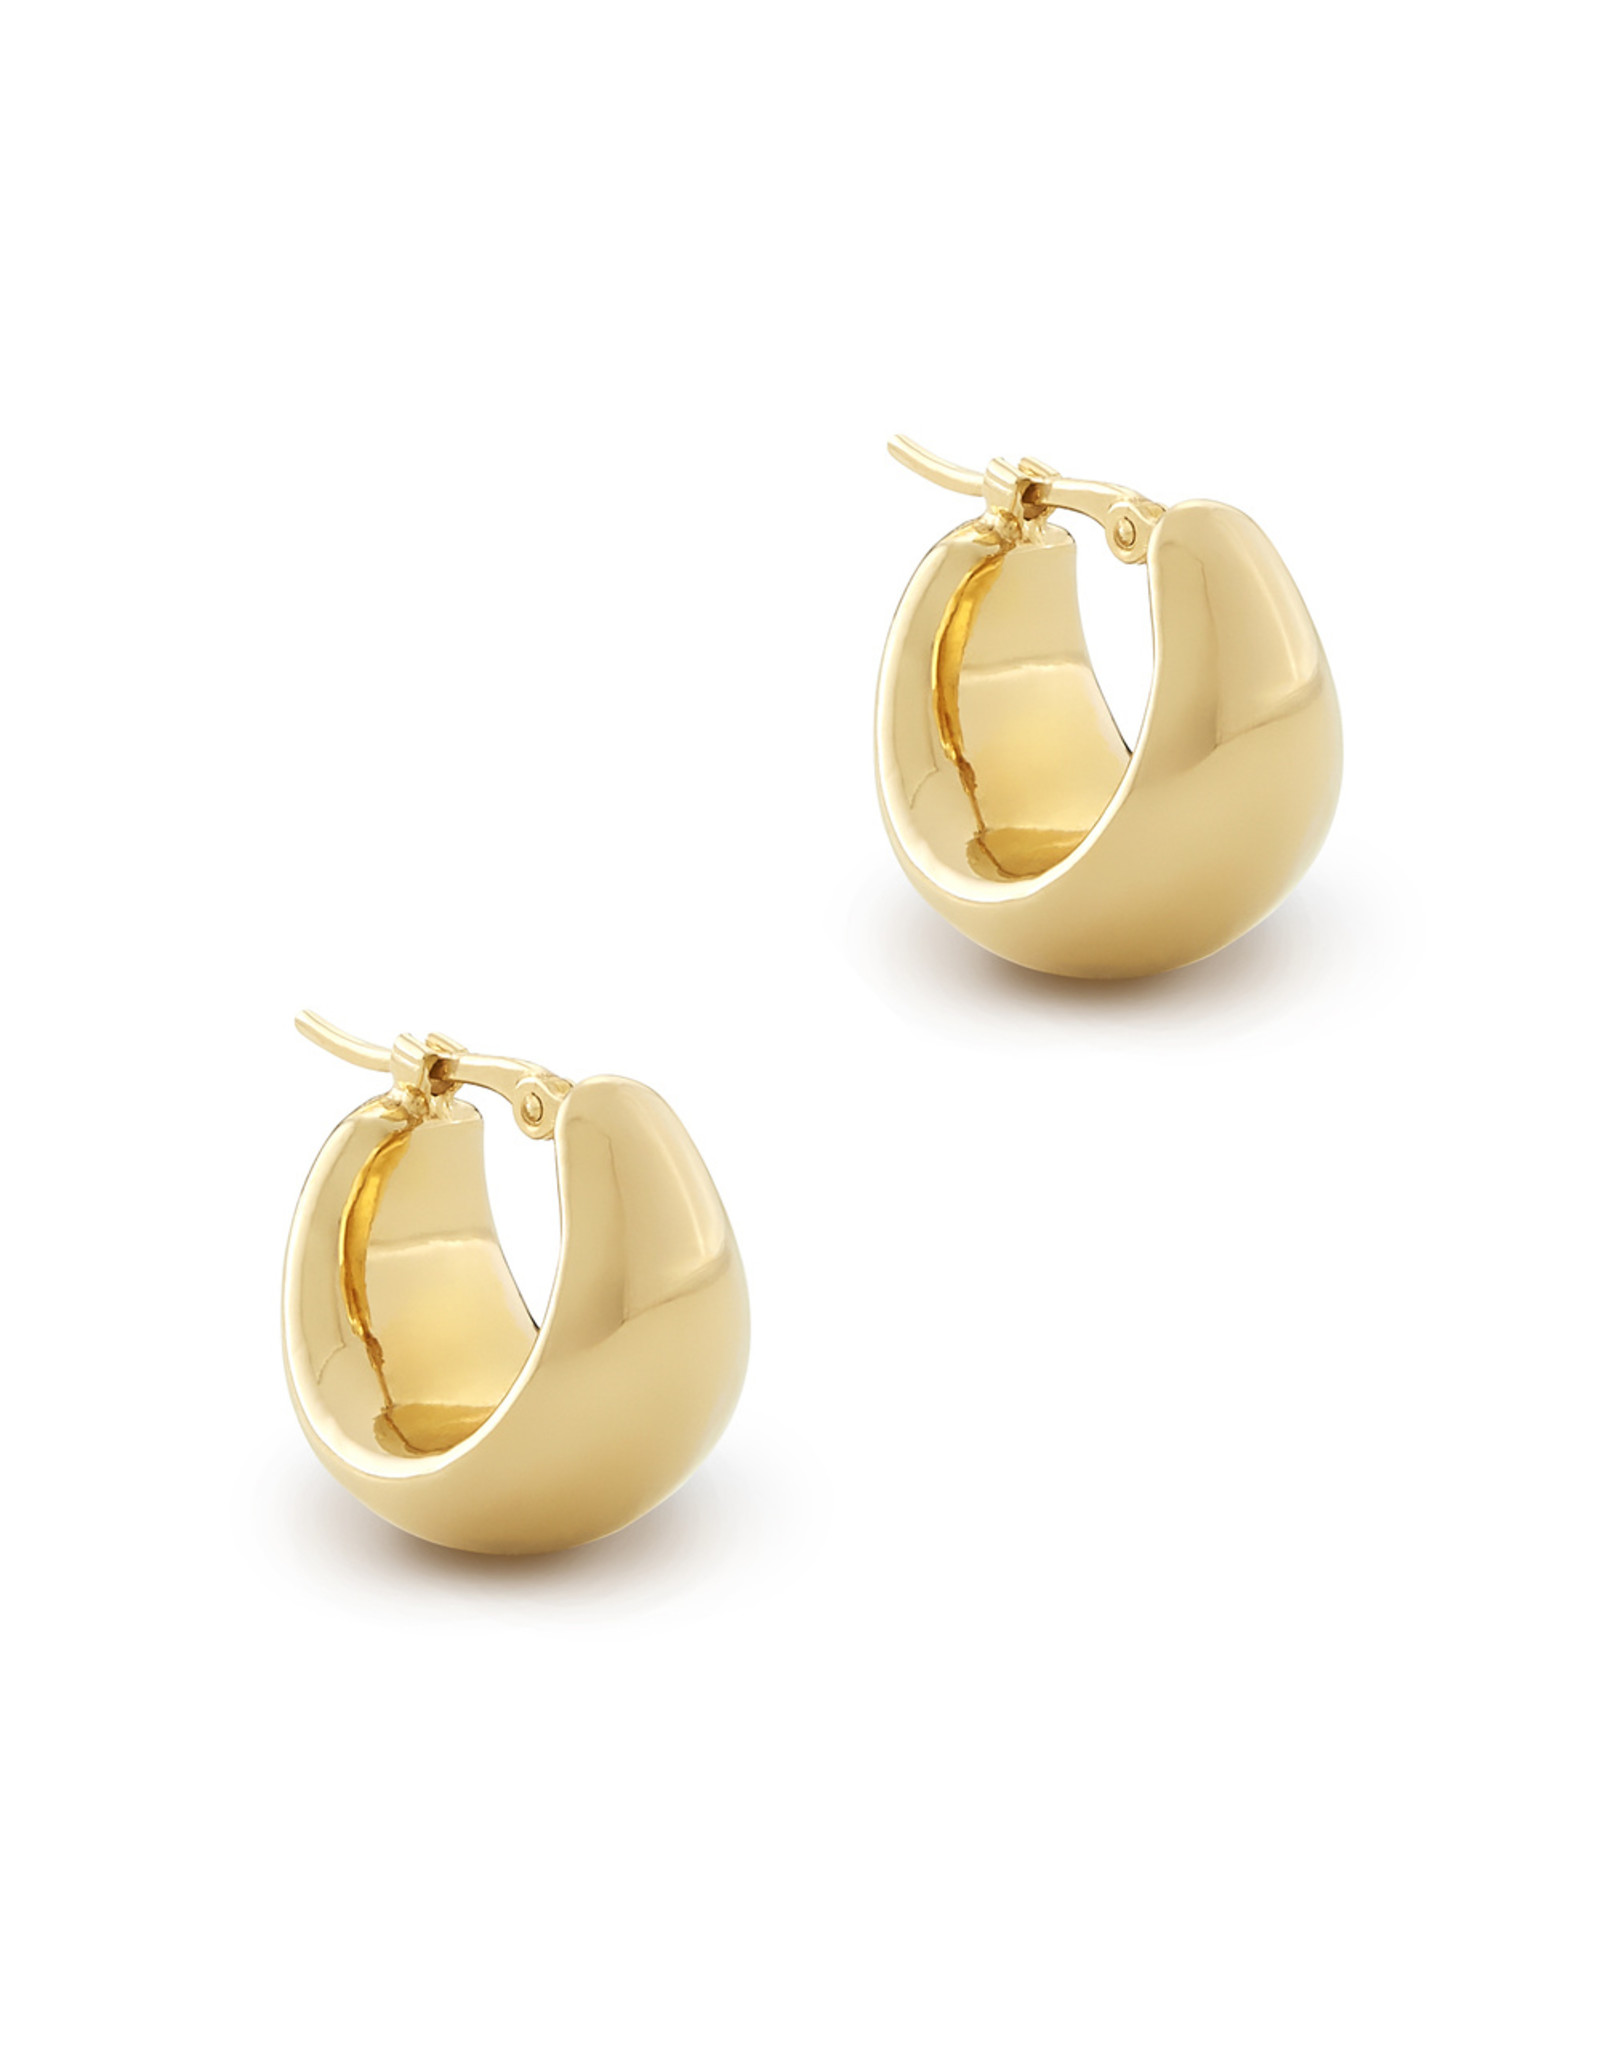 Ariel Gordon Ariel Gordon Helium Earrings (Color: Yellow Gold)